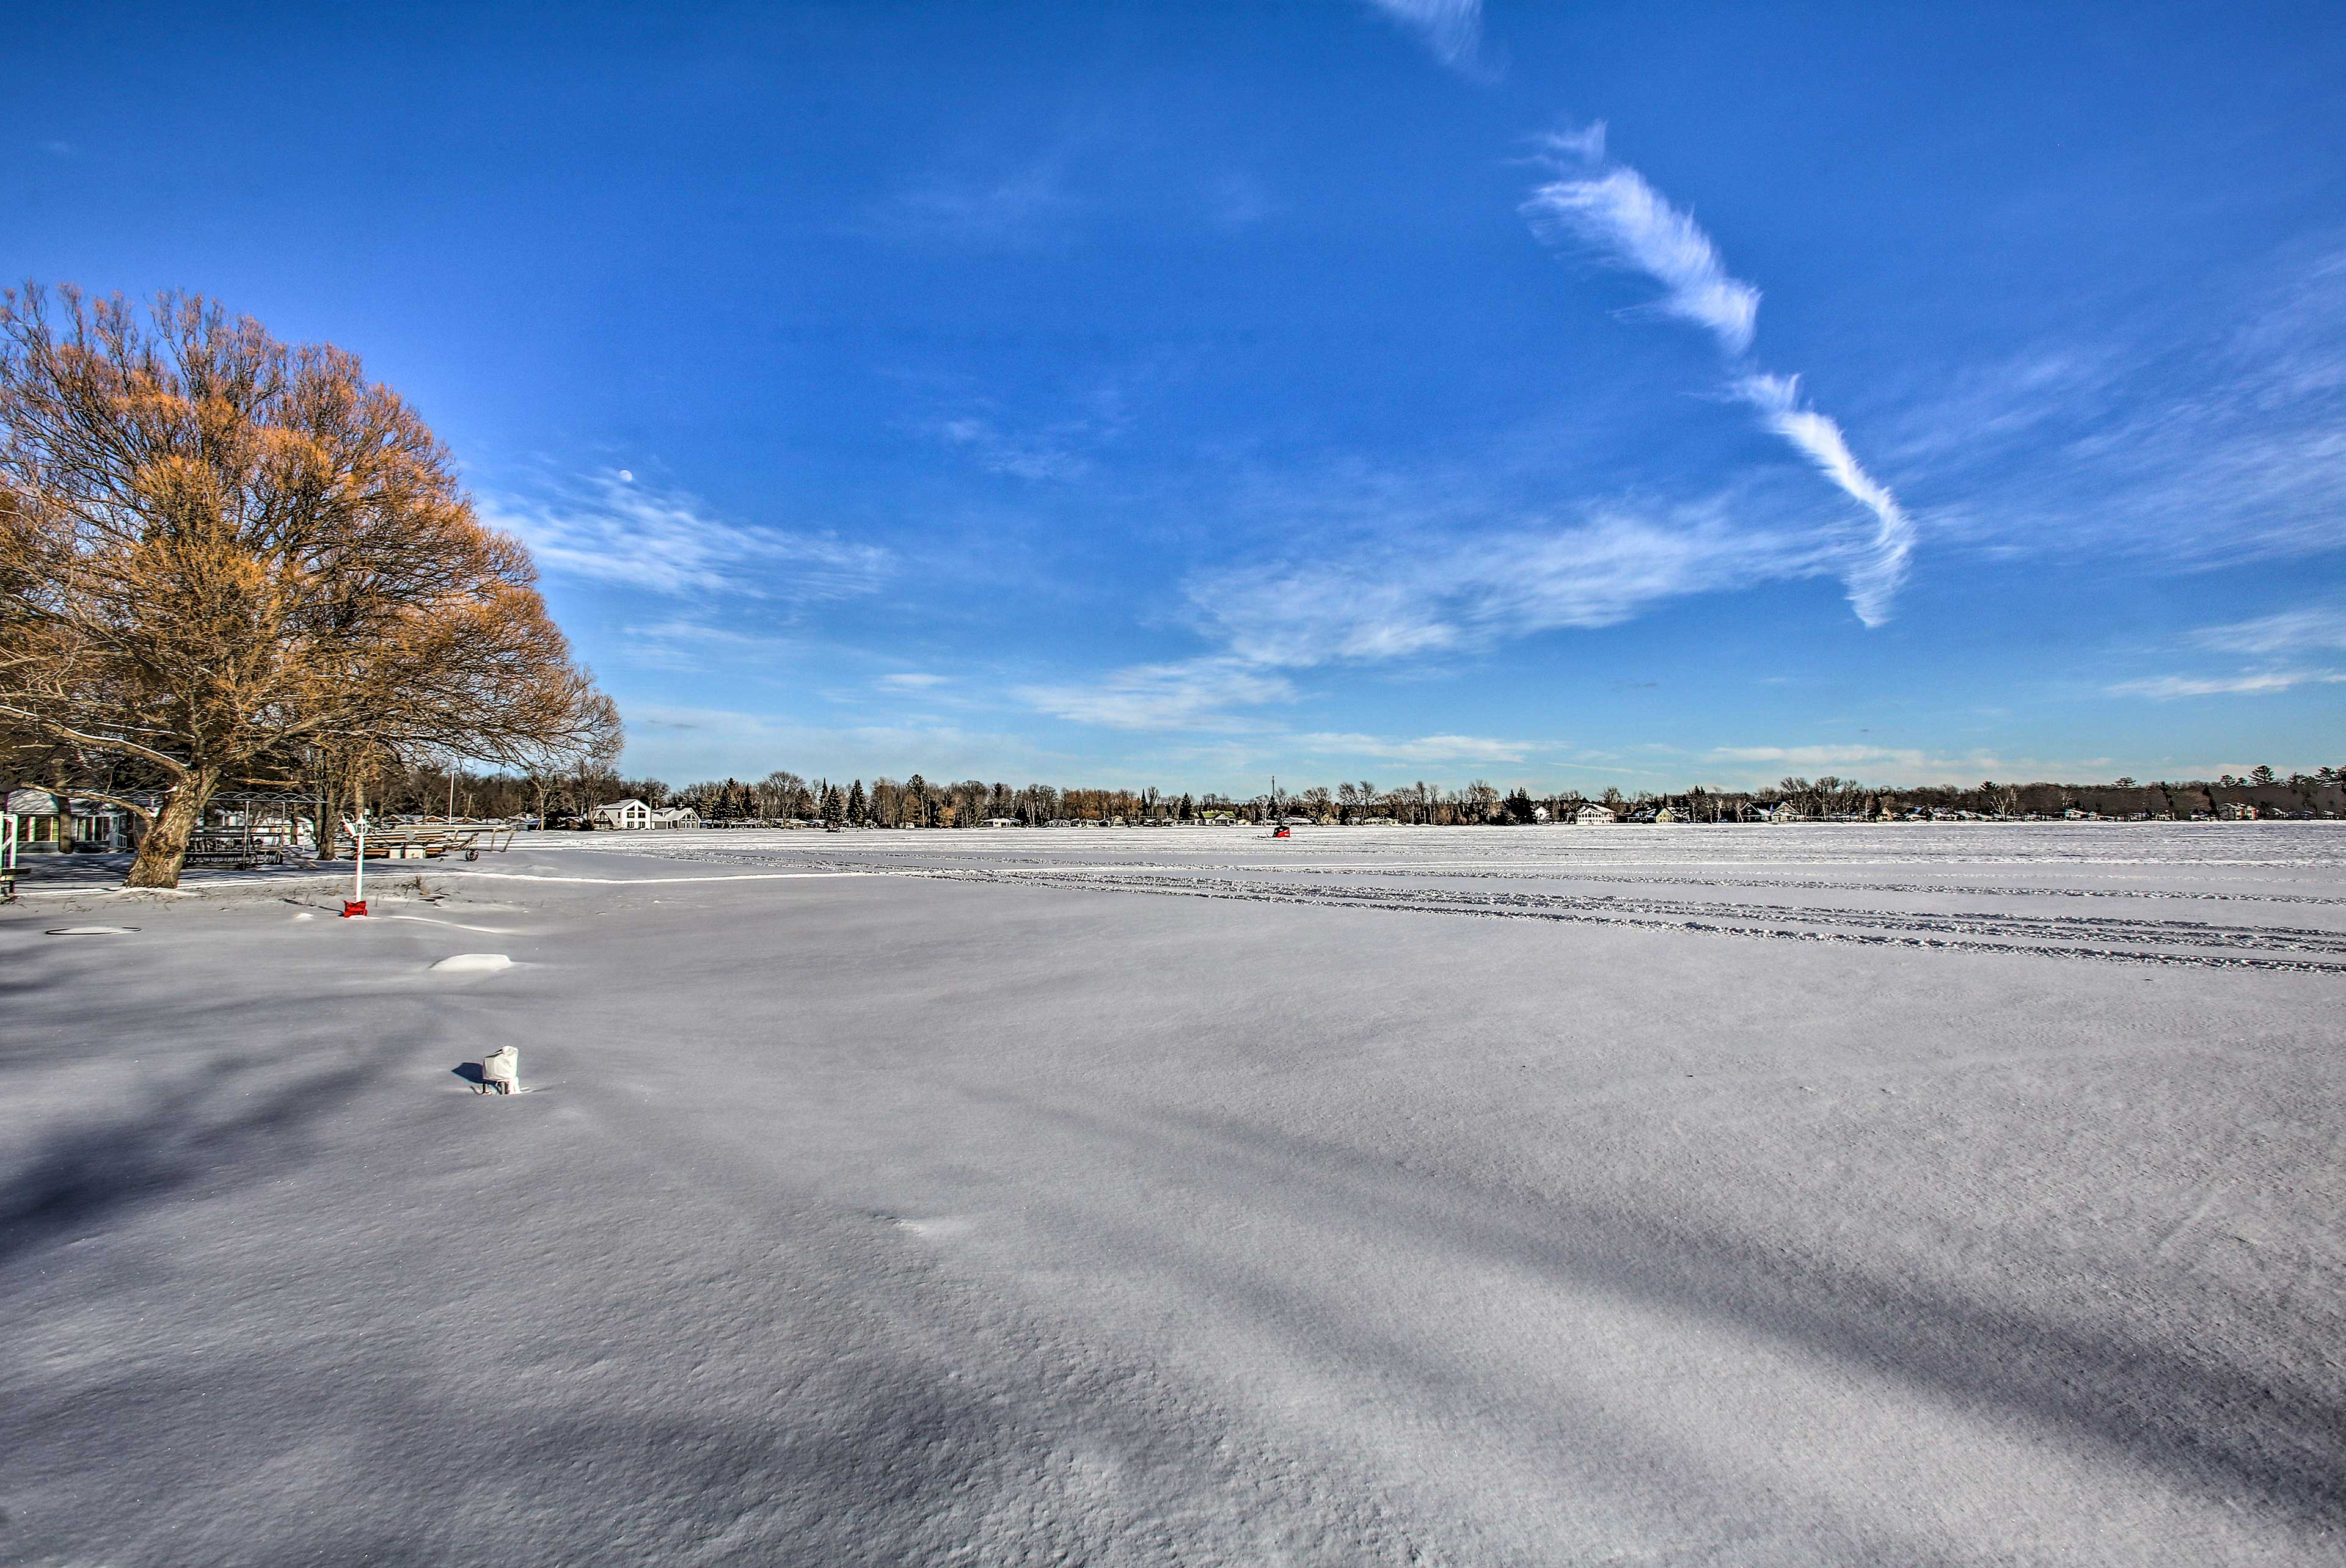 The lake is perfect for some wintertime ice fishing.